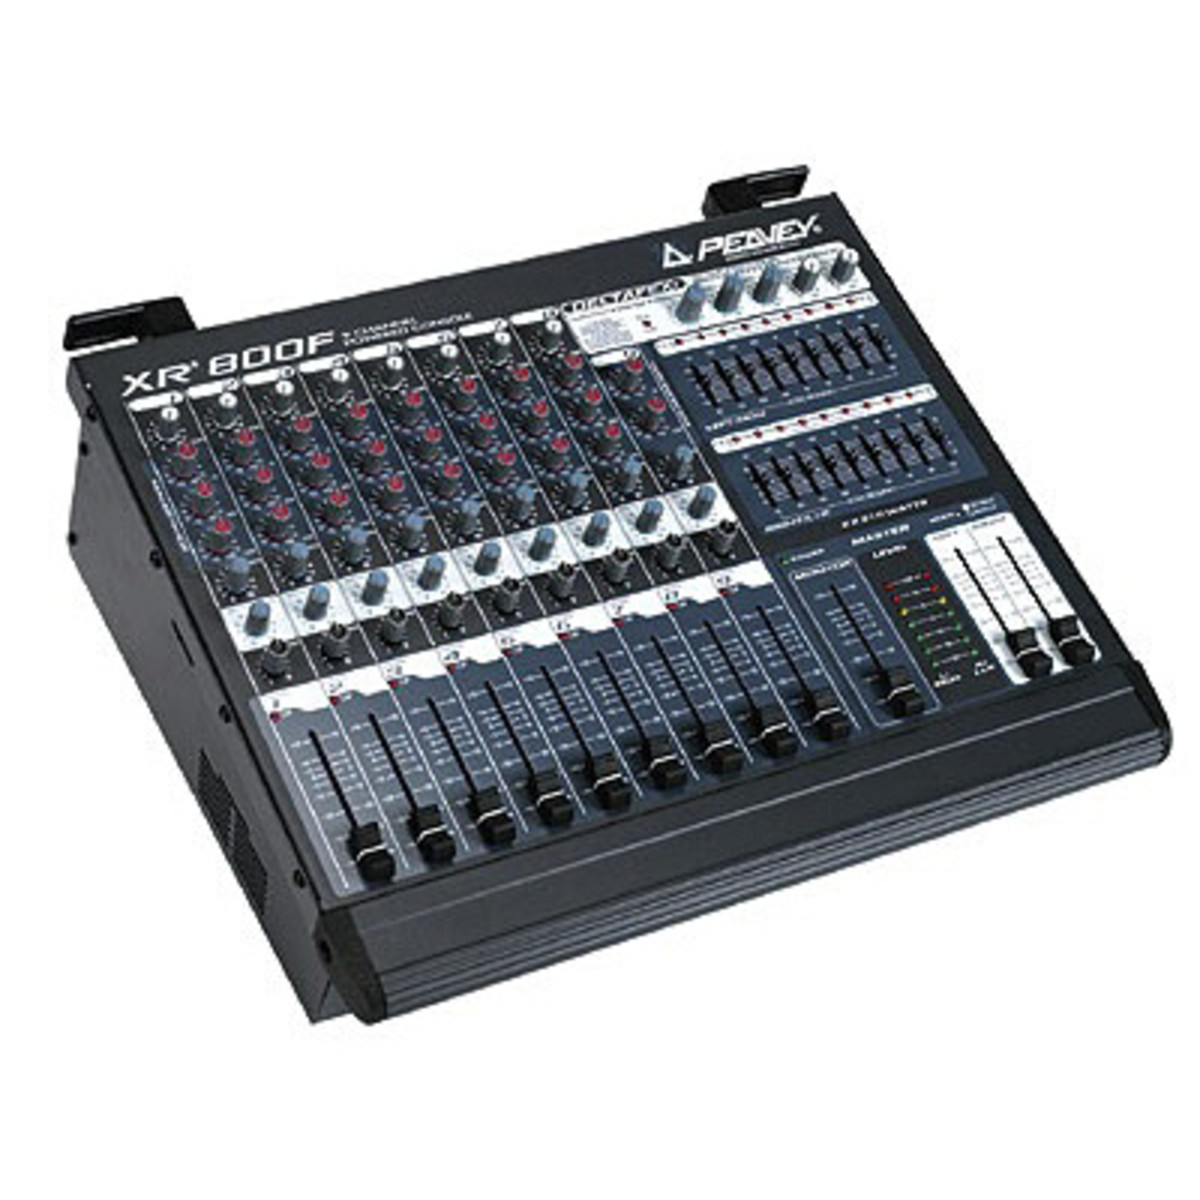 table de mixage amplfi e de xr800f peavey. Black Bedroom Furniture Sets. Home Design Ideas